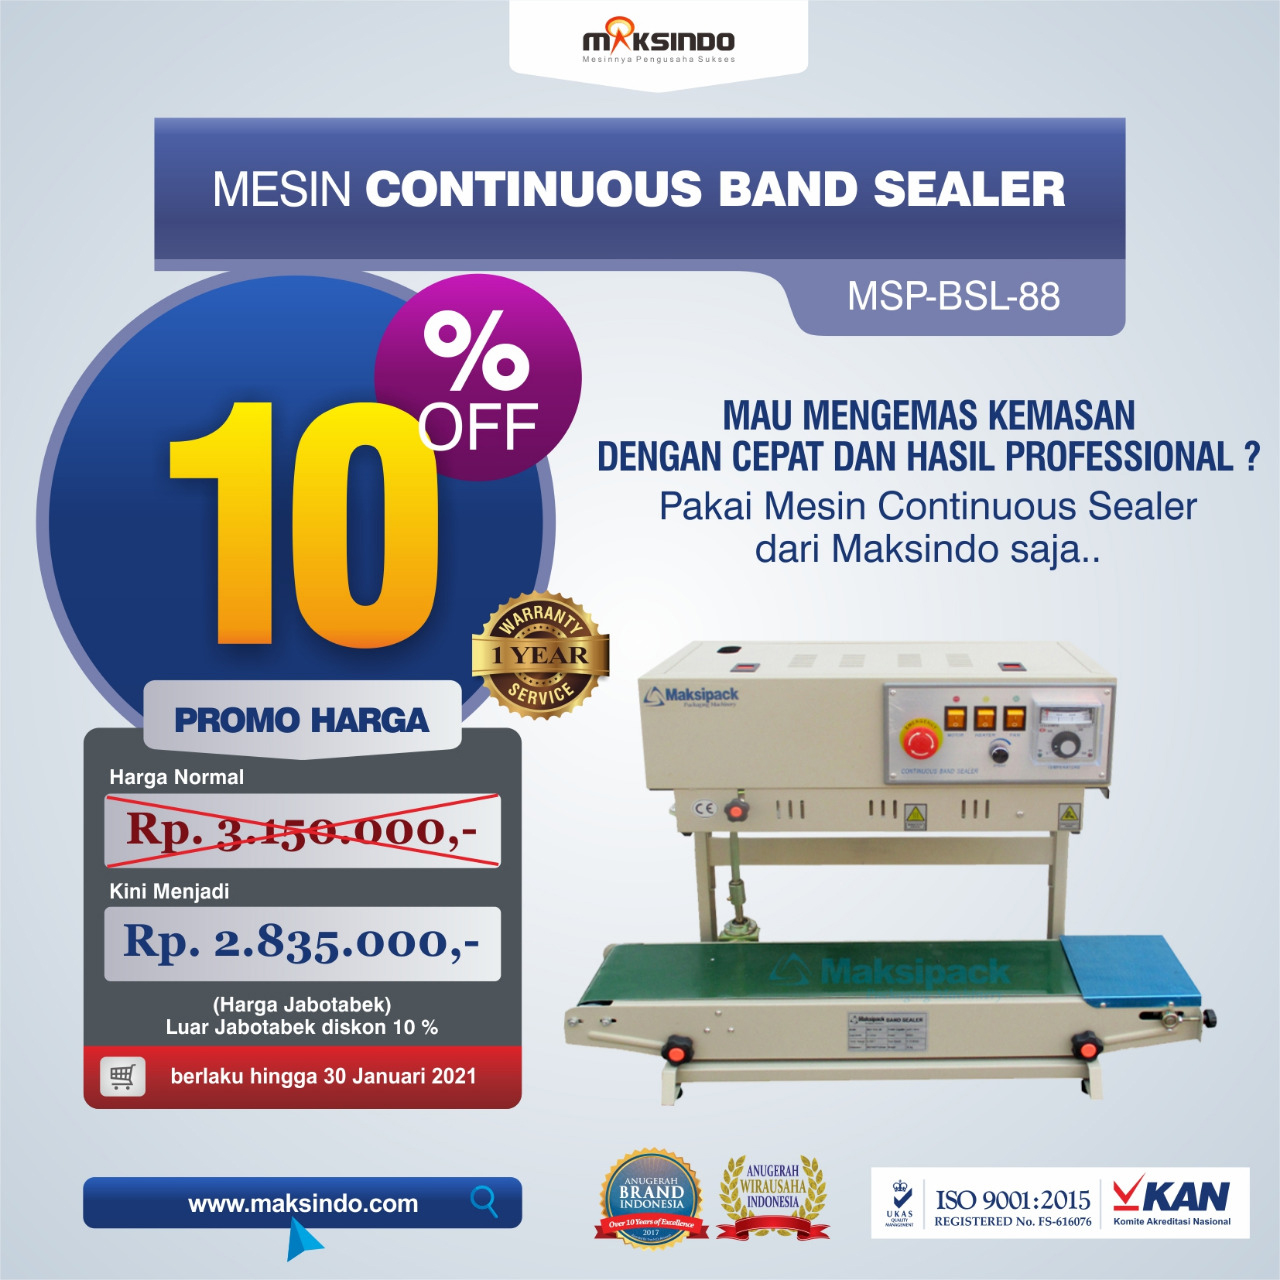 Jual Mesin Continuous Band Sealer MSP-BSL-88 di Malang